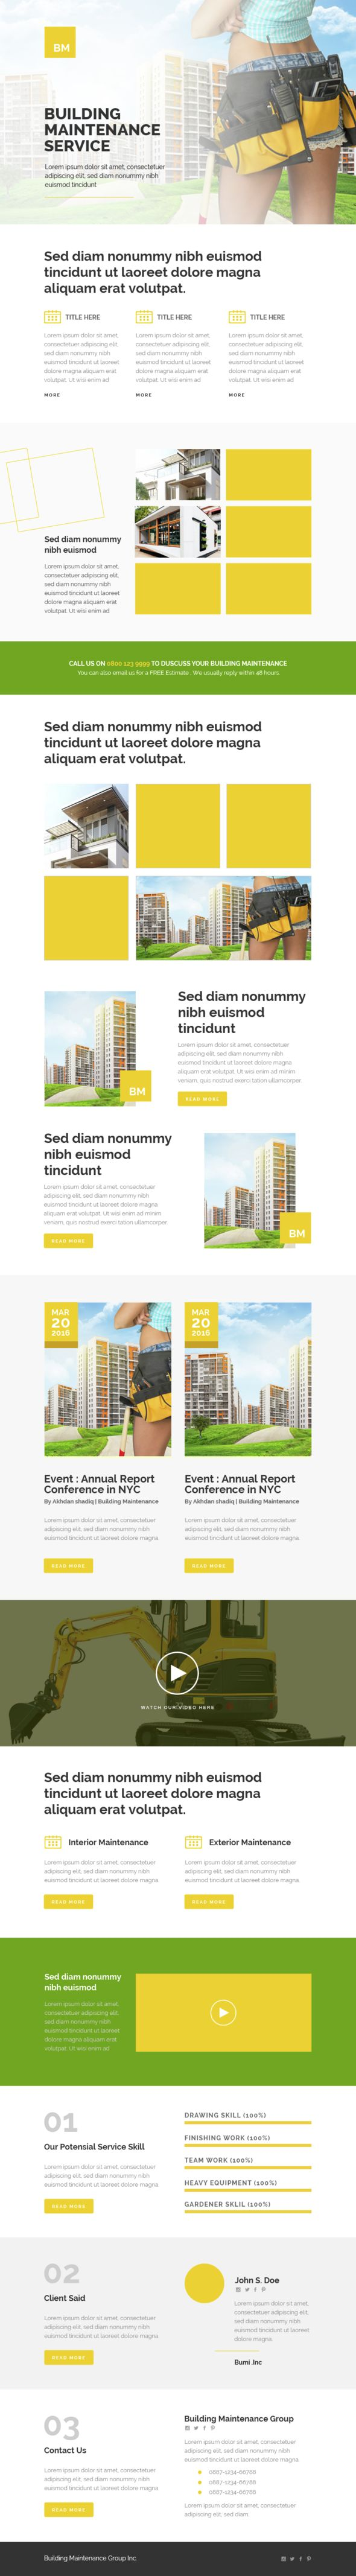 Best 25 free responsive email templates ideas on pinterest free best free website templates pronofoot35fo Image collections